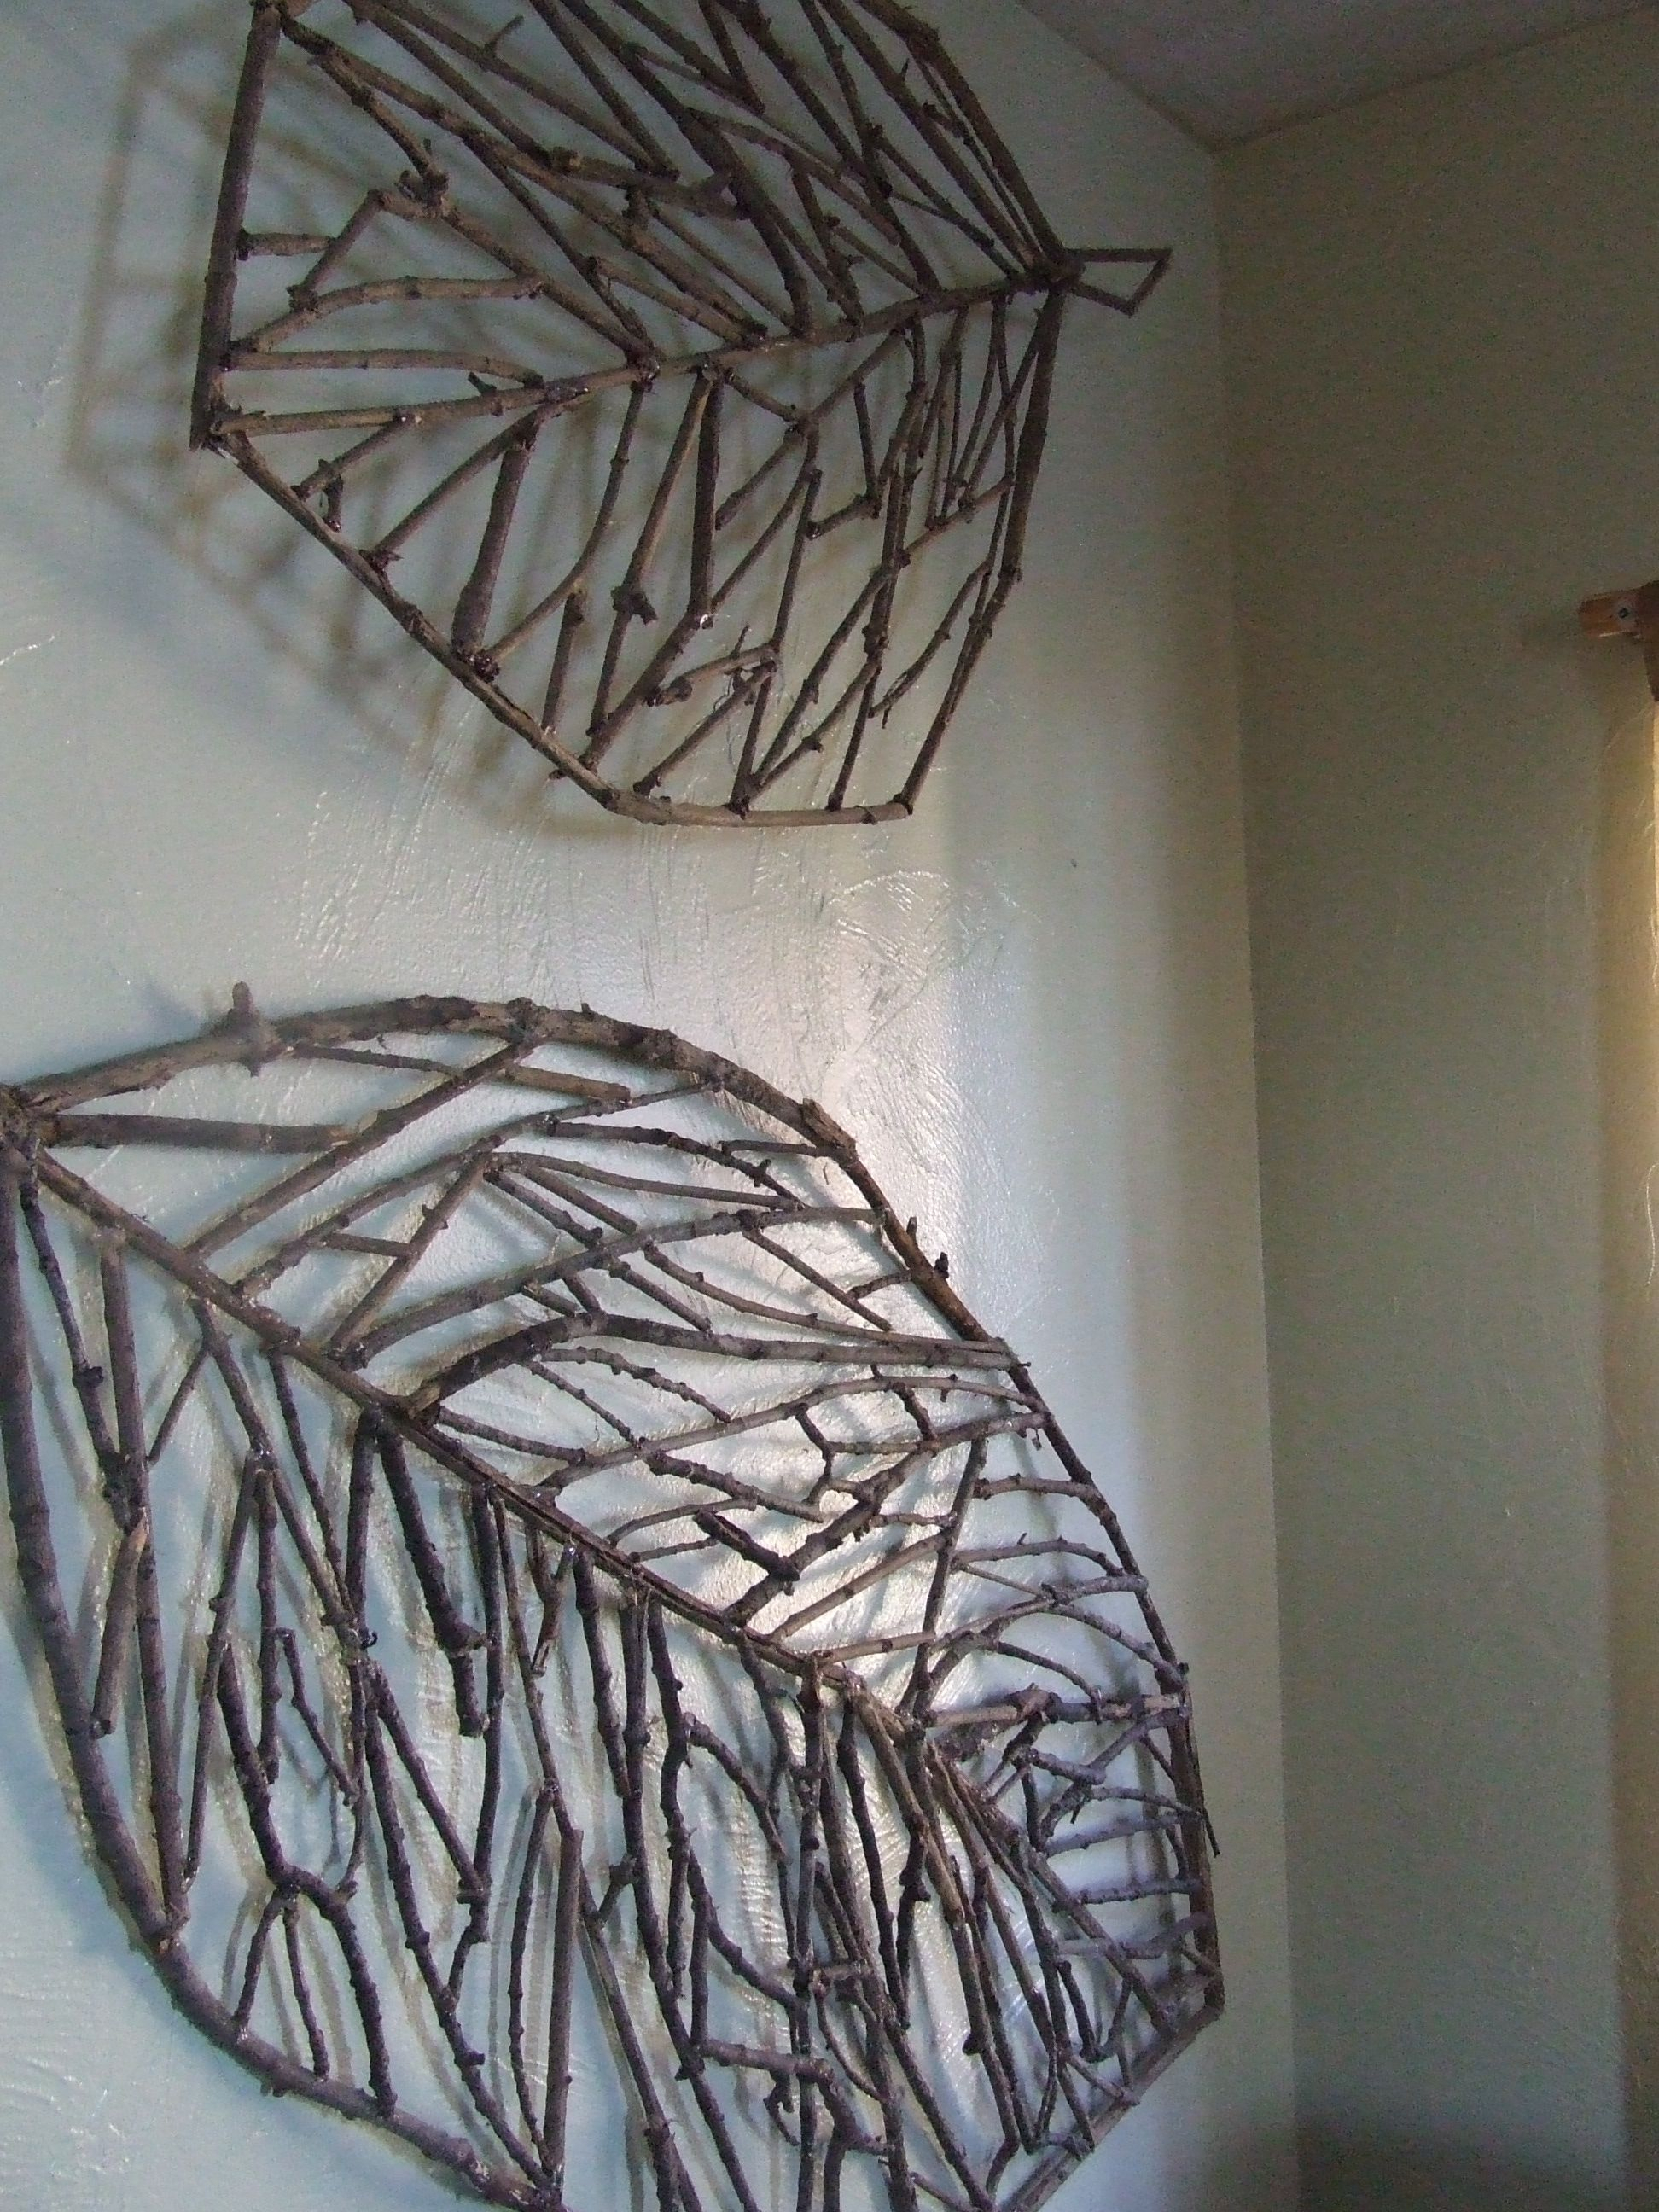 Twig Crafts With Tree Shell Leaves Sculpture Wall Decor (View 15 of 20)